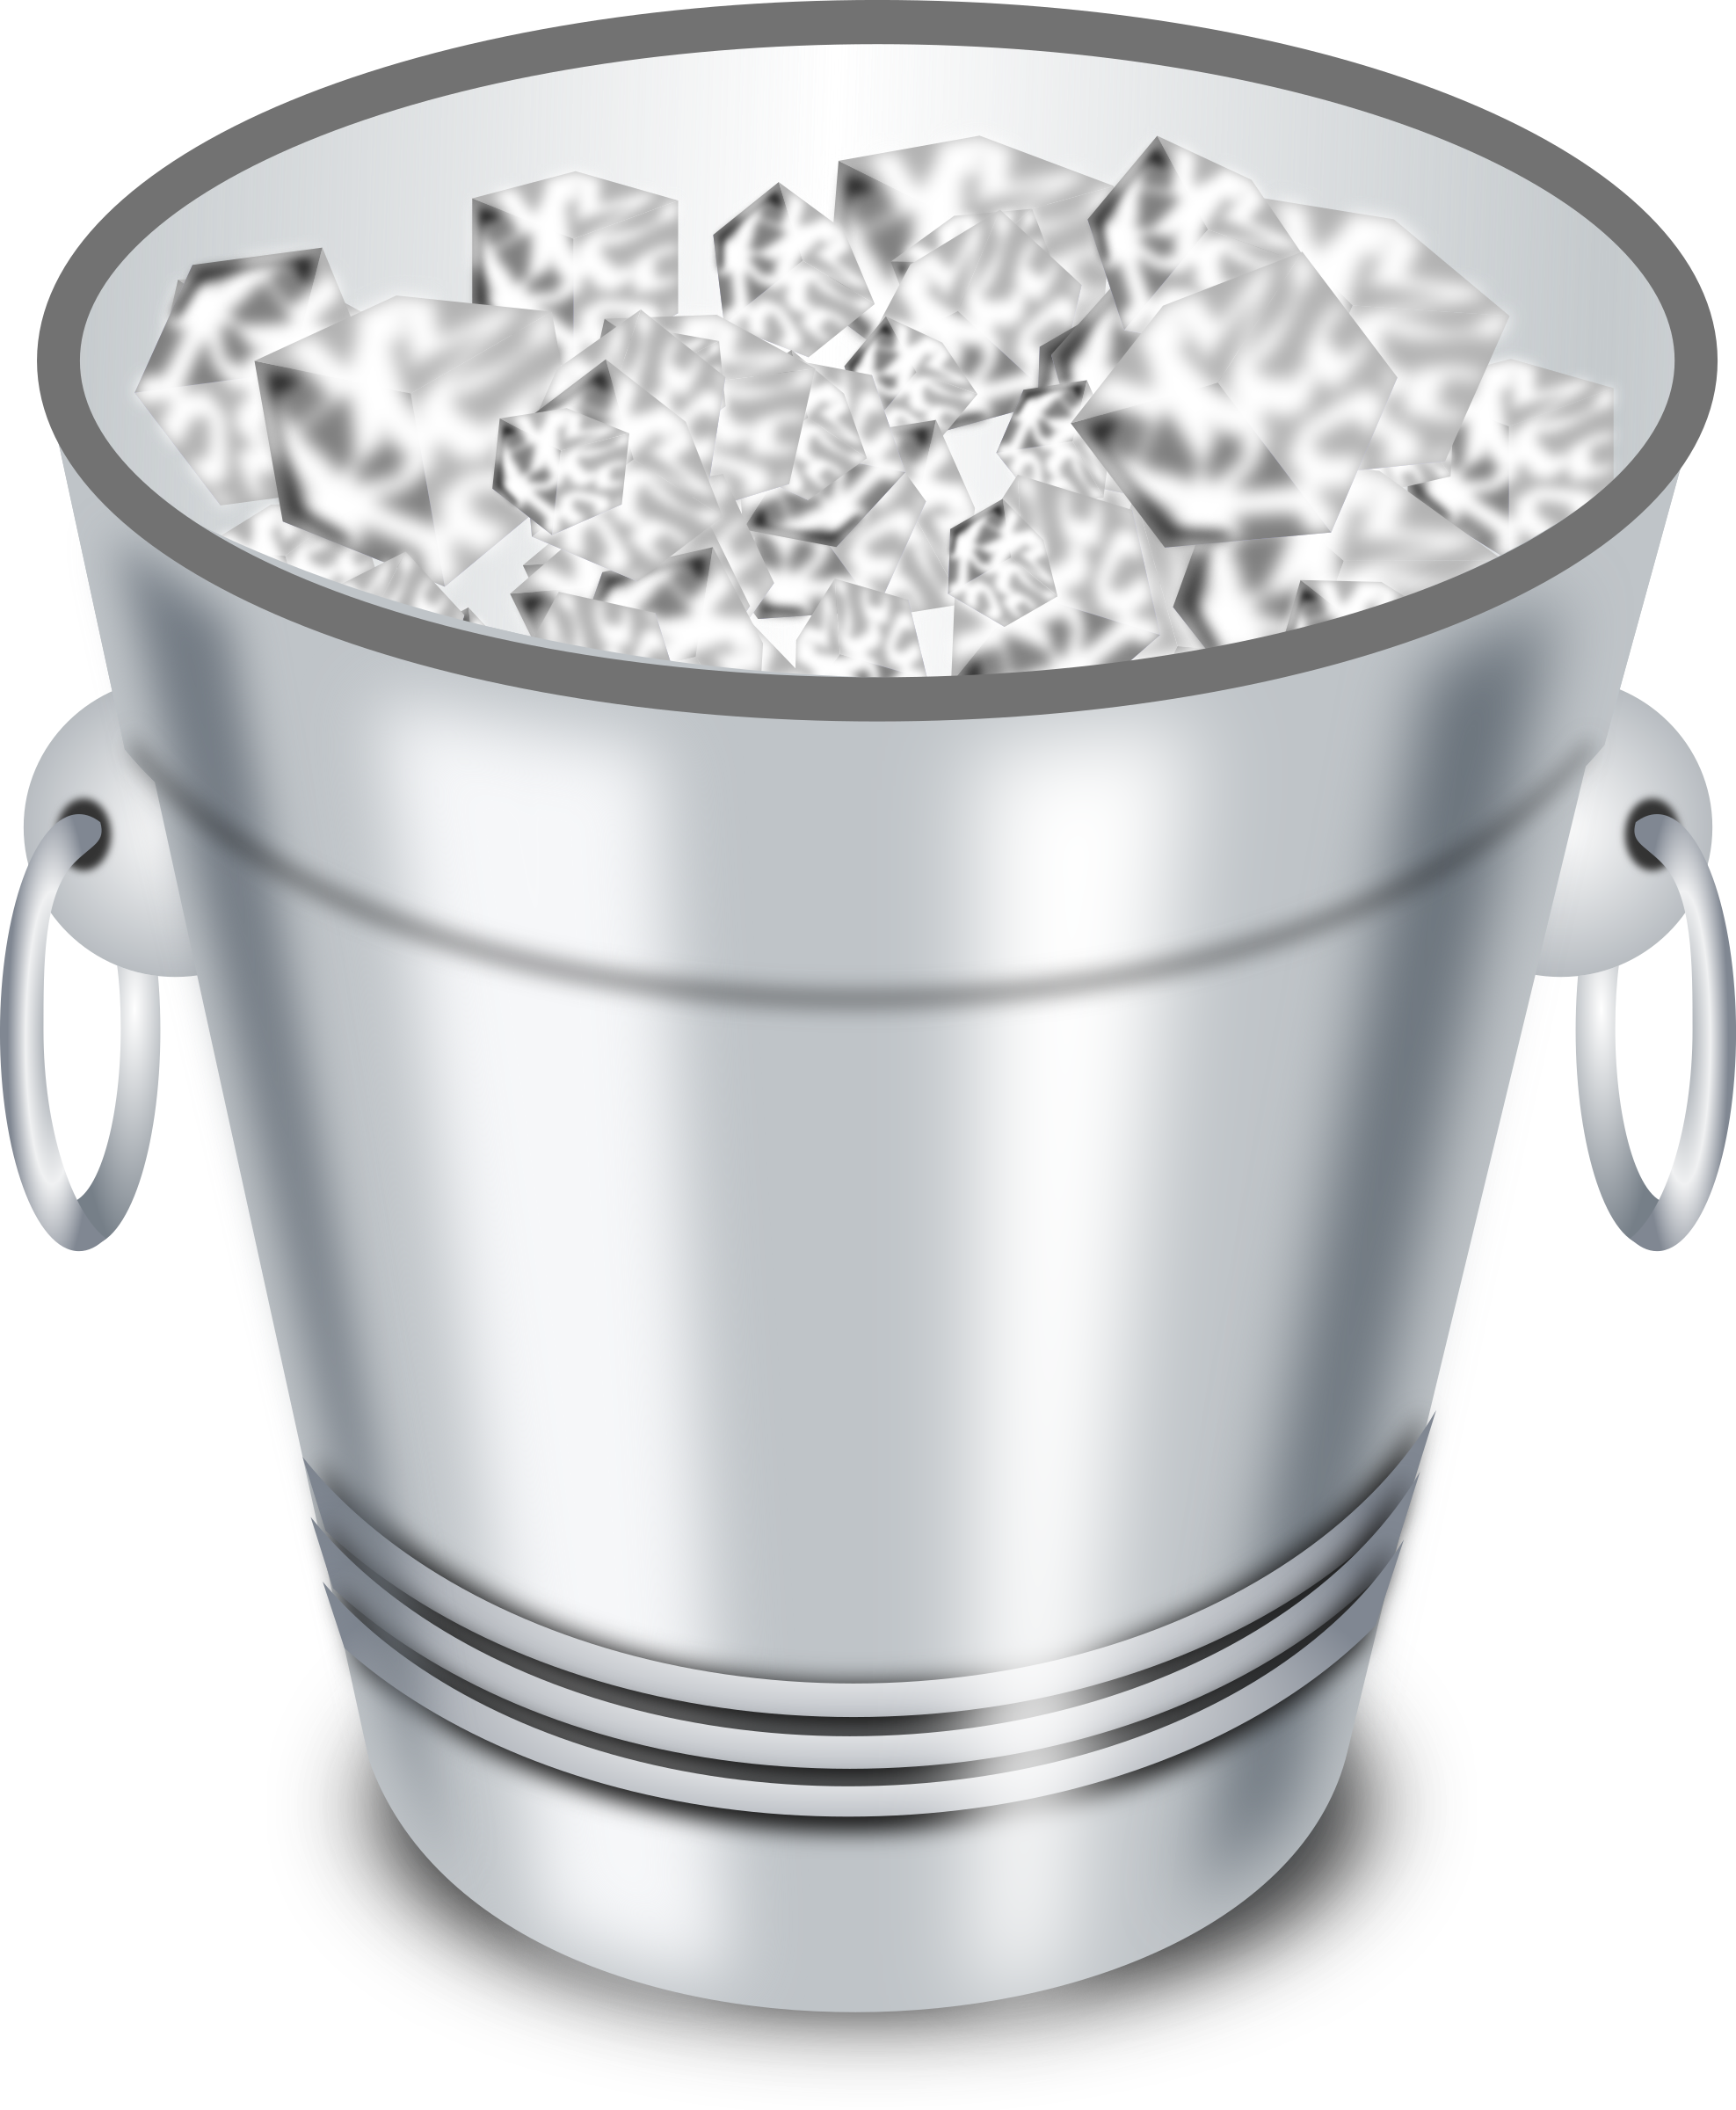 Ice bucket by Chrisdesign